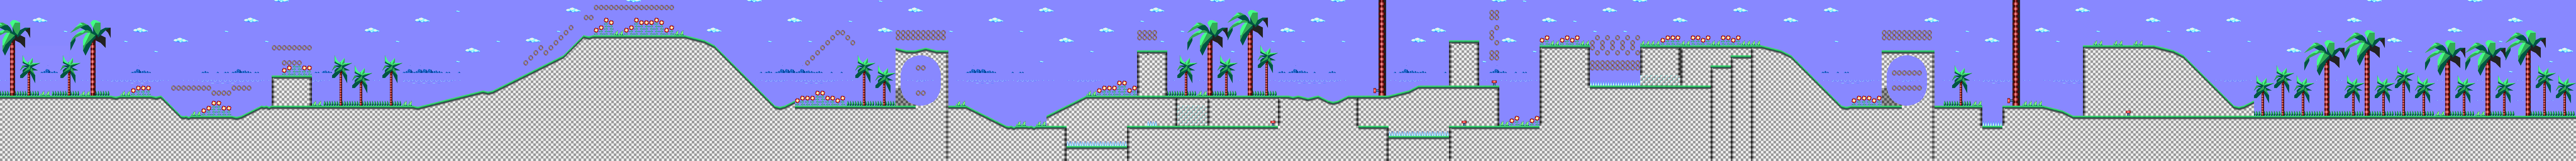 Sonic2AutoDemo_GG_GHZ1_Map.png